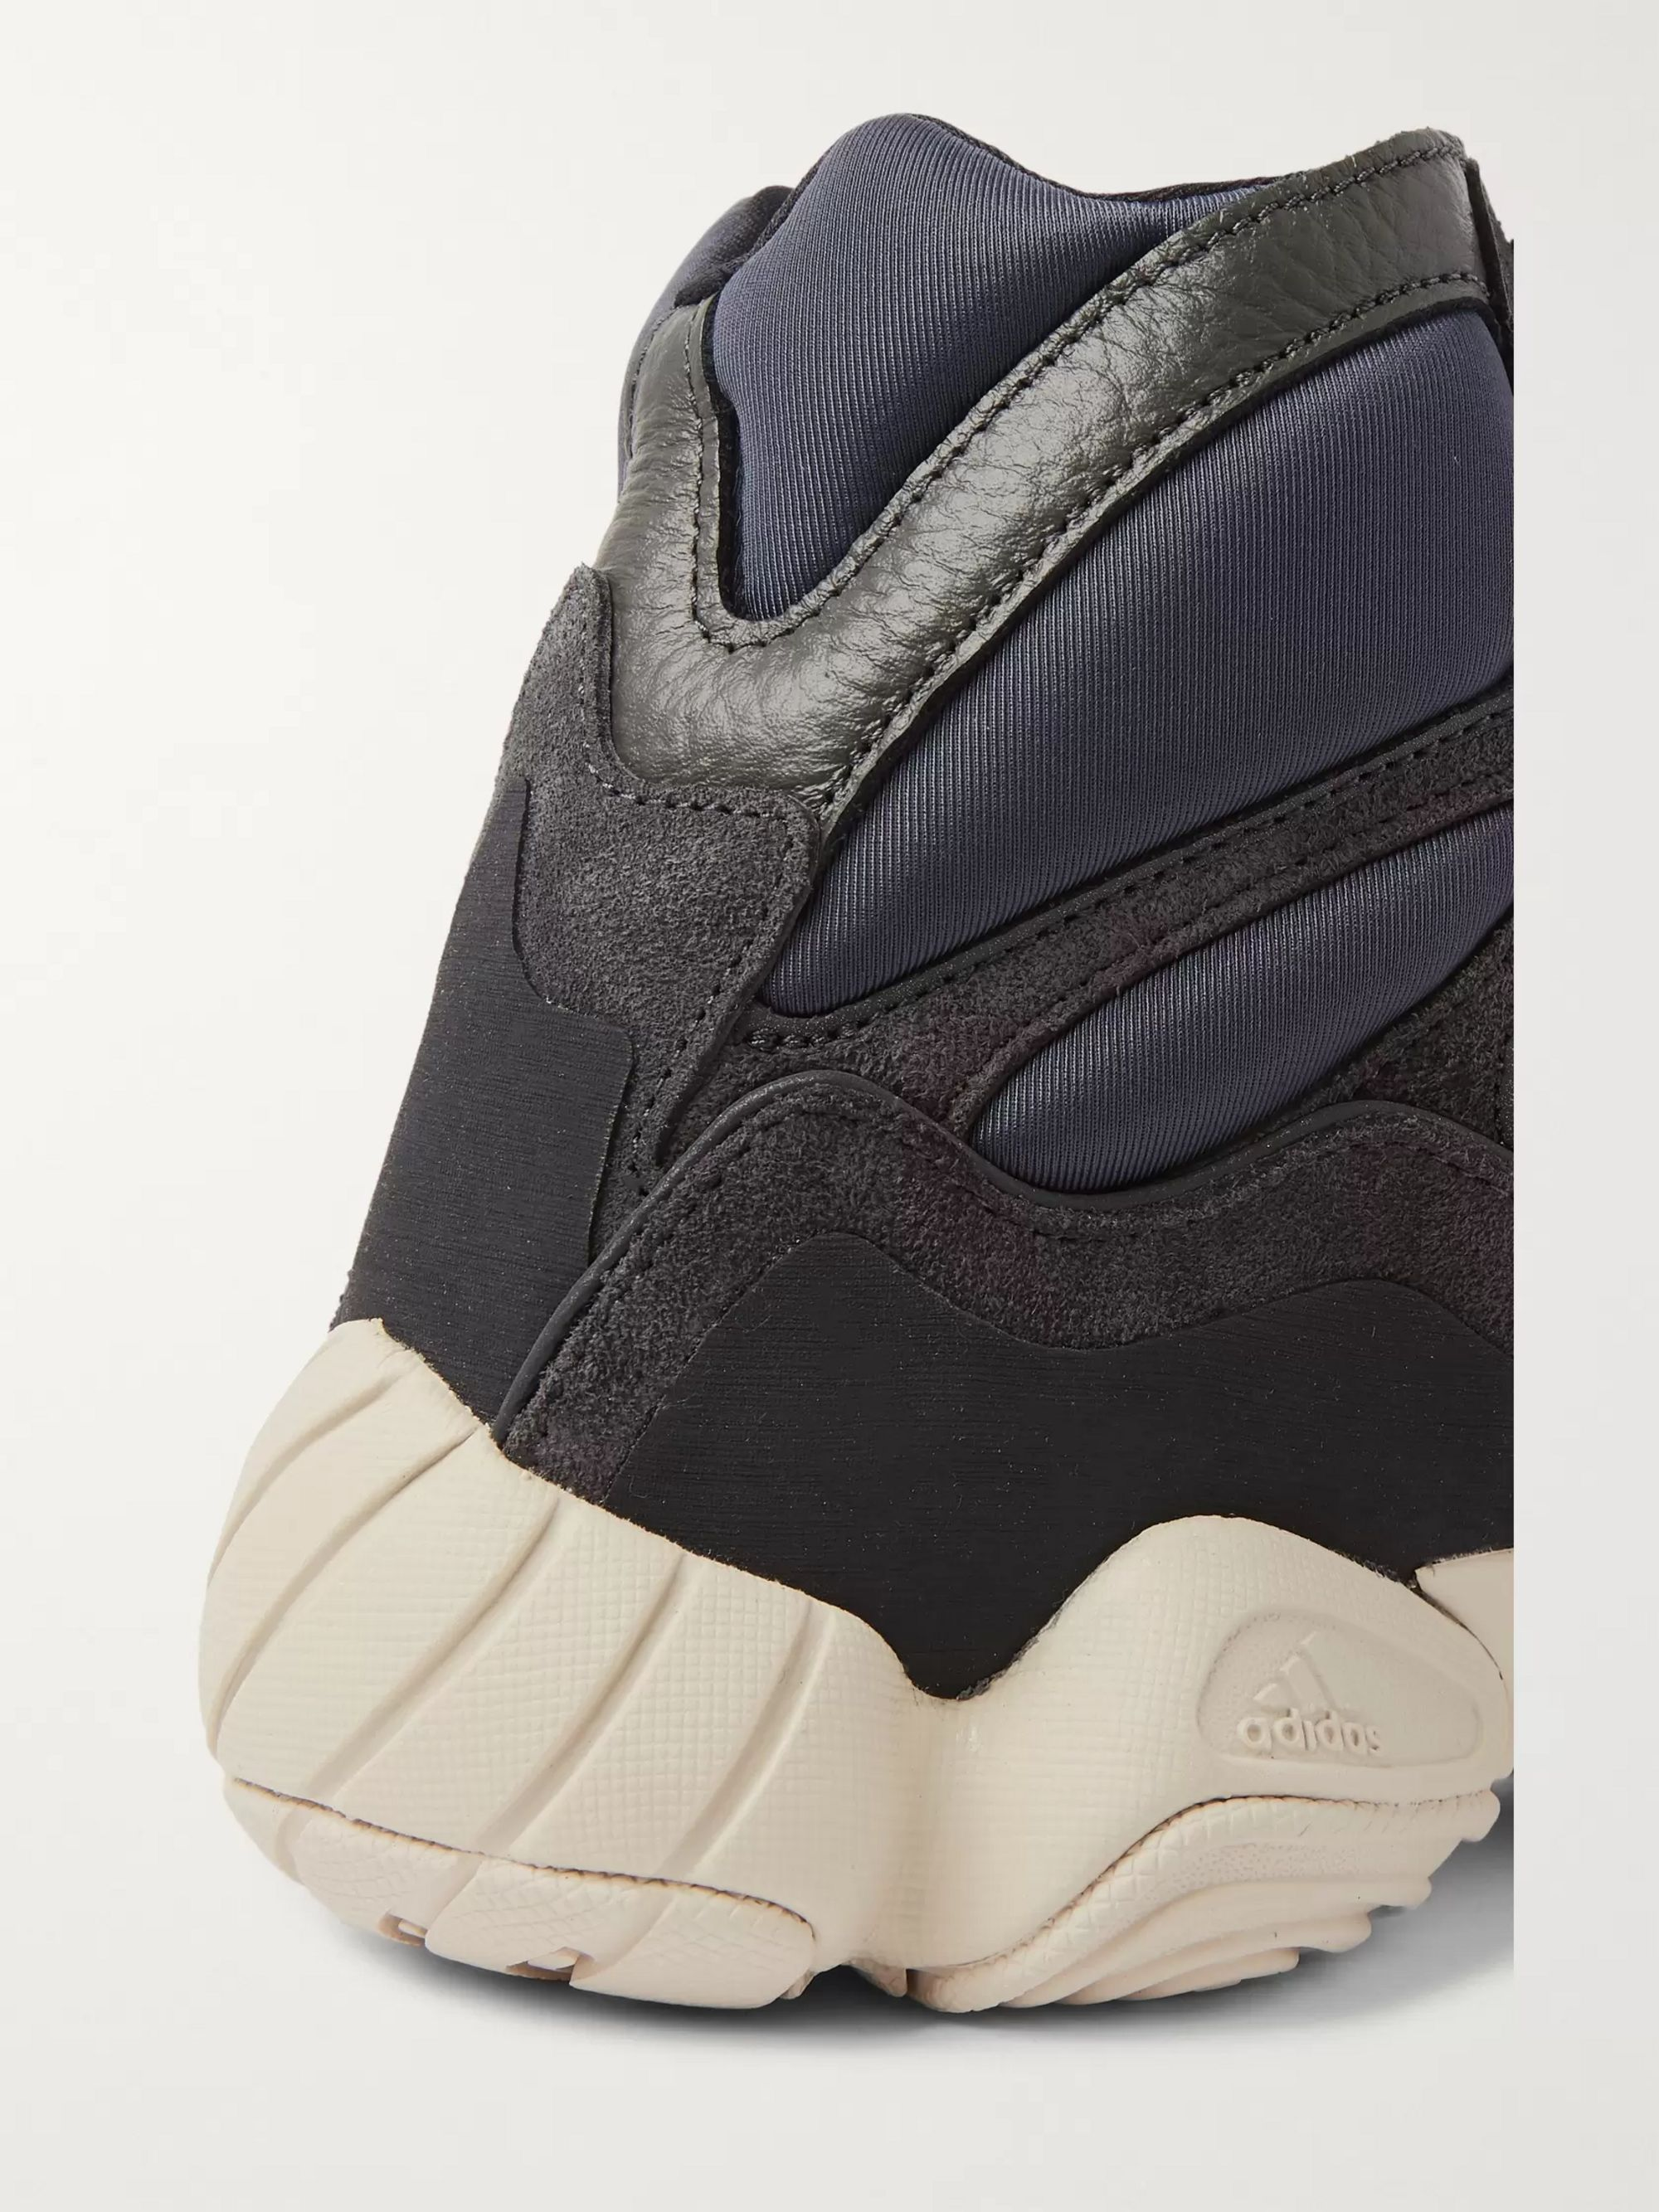 adidas Originals Yeezy High 500 Neoprene, Suede and Leather High-Top Sneakers